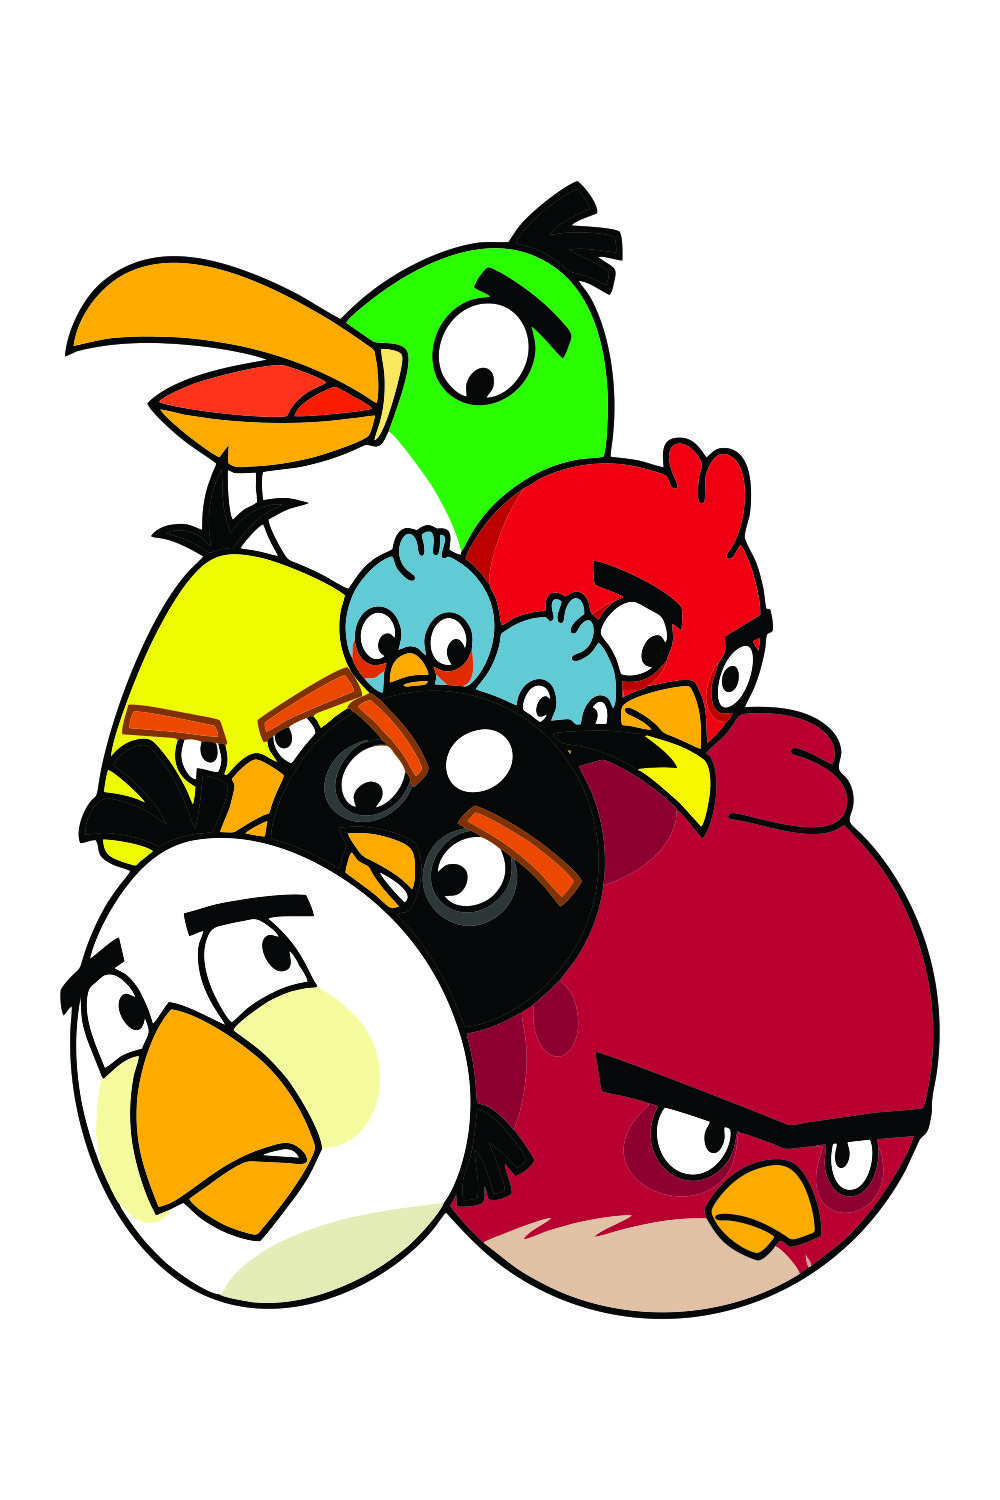 Angry Birds Vector Images Png Cdr Svg Ai Instant Download Angry Birds Characters Angry Birds Bird Clipart